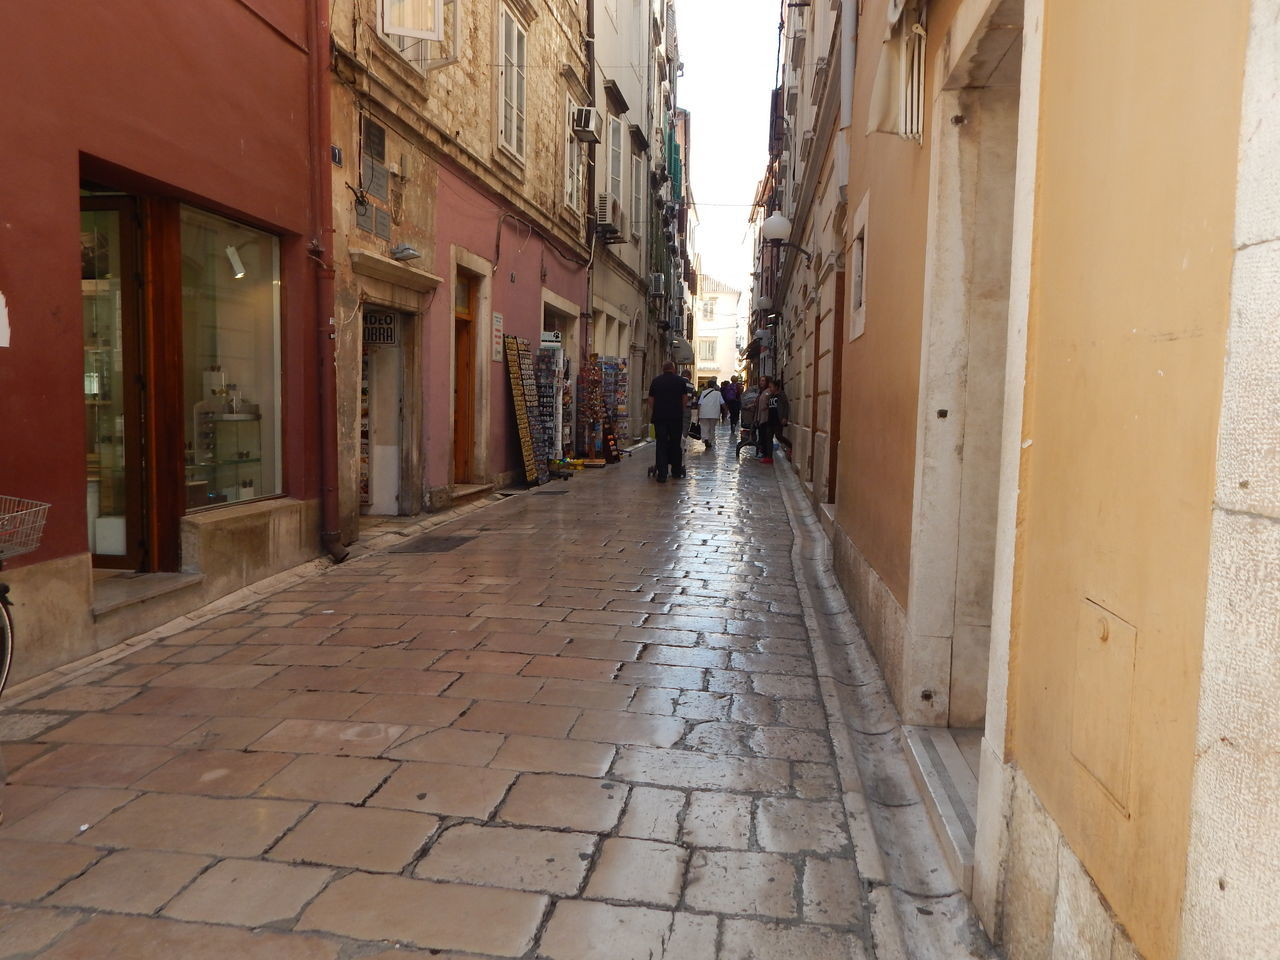 Walking in Zadar old town Architecture Building Exterior Built Structure City Day Historical Outdoors Sky